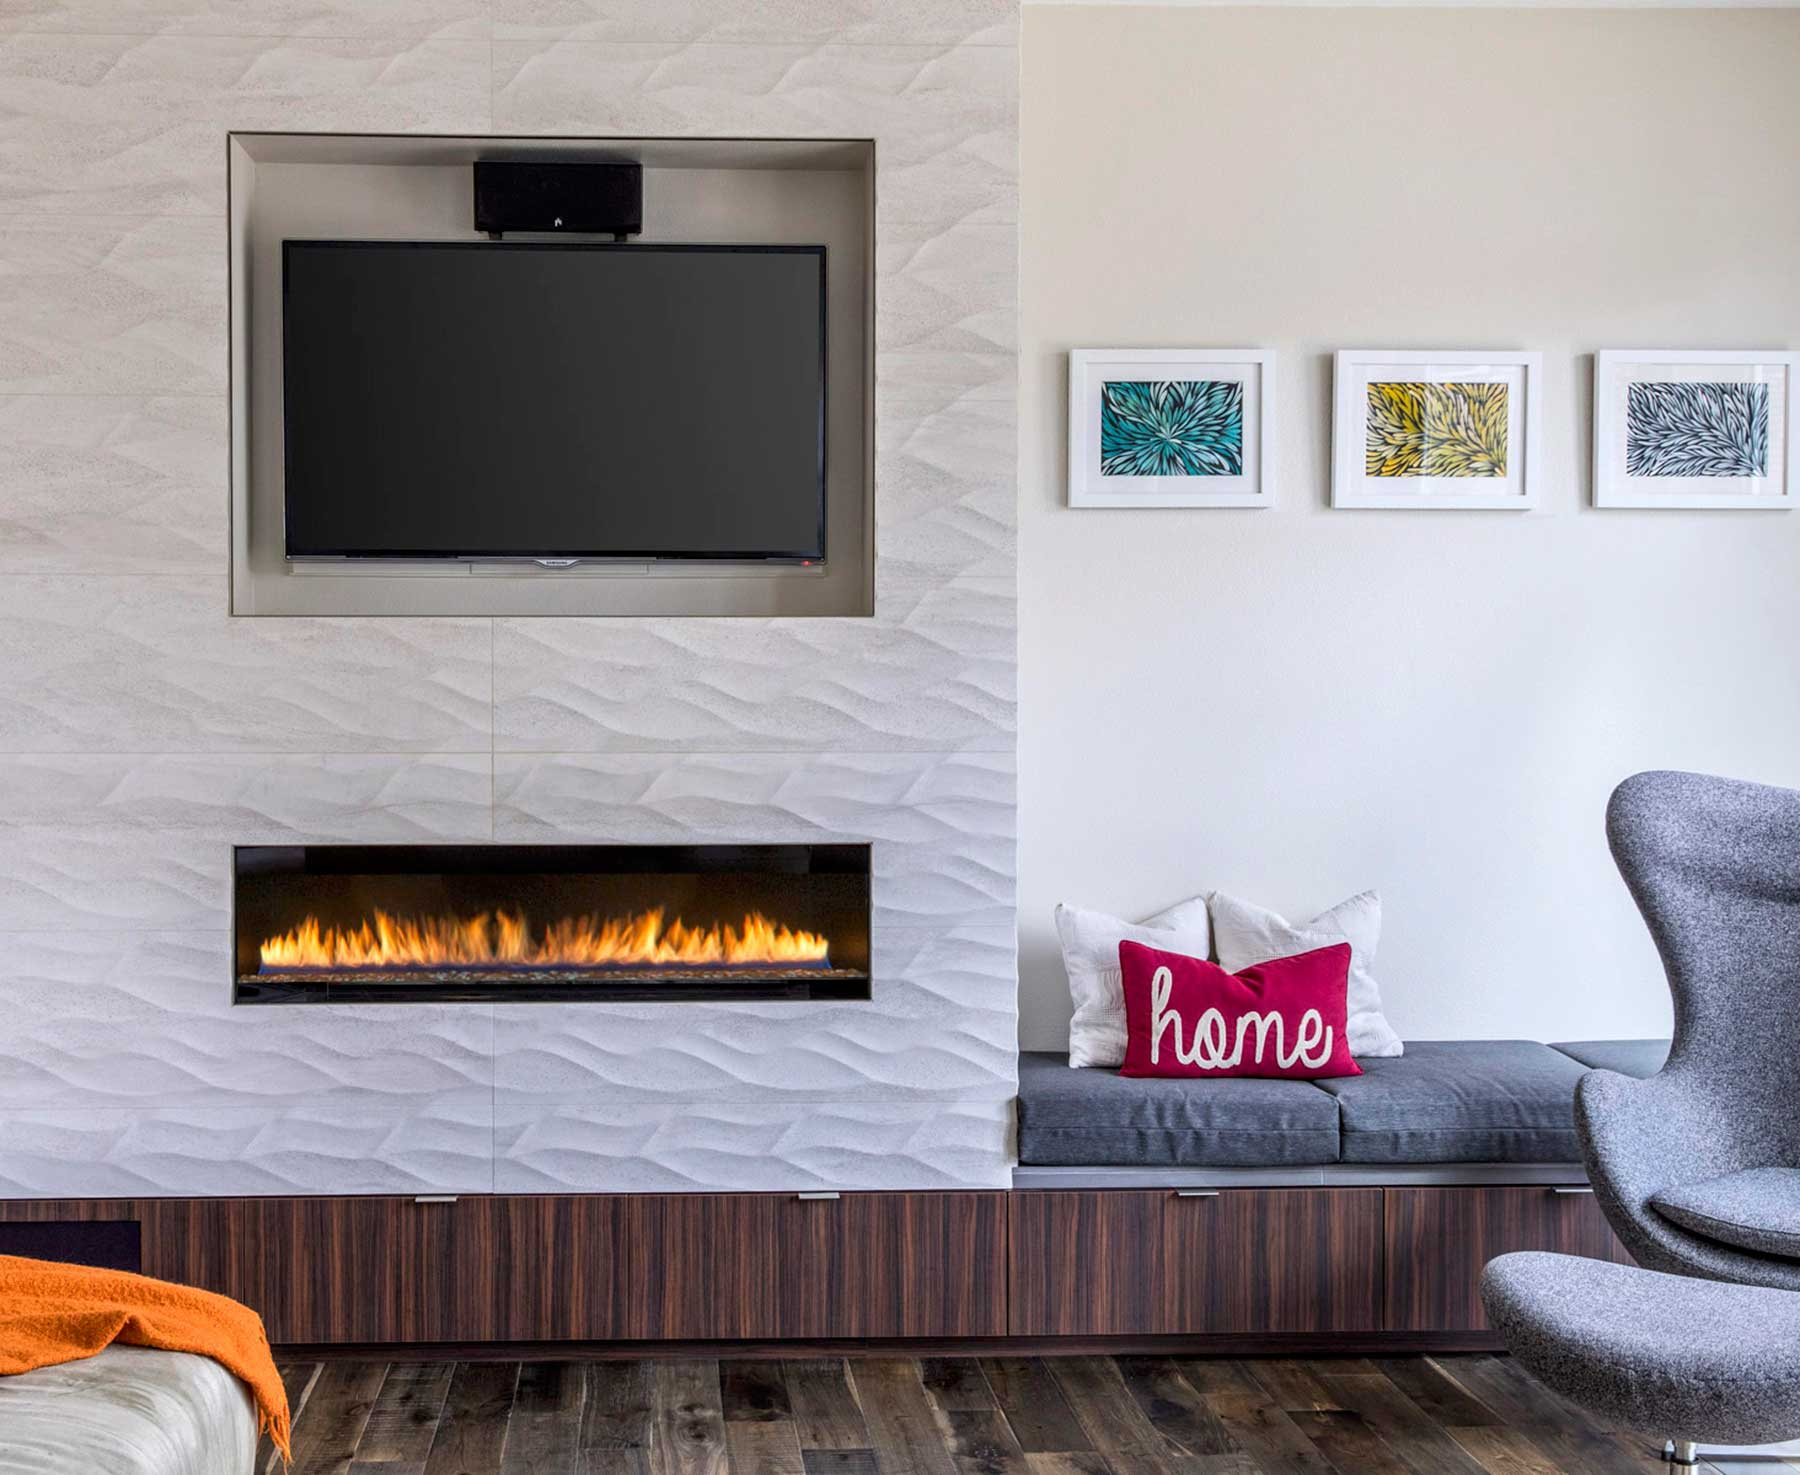 Kitchen remodel with a built in floating fireplace and built in tv